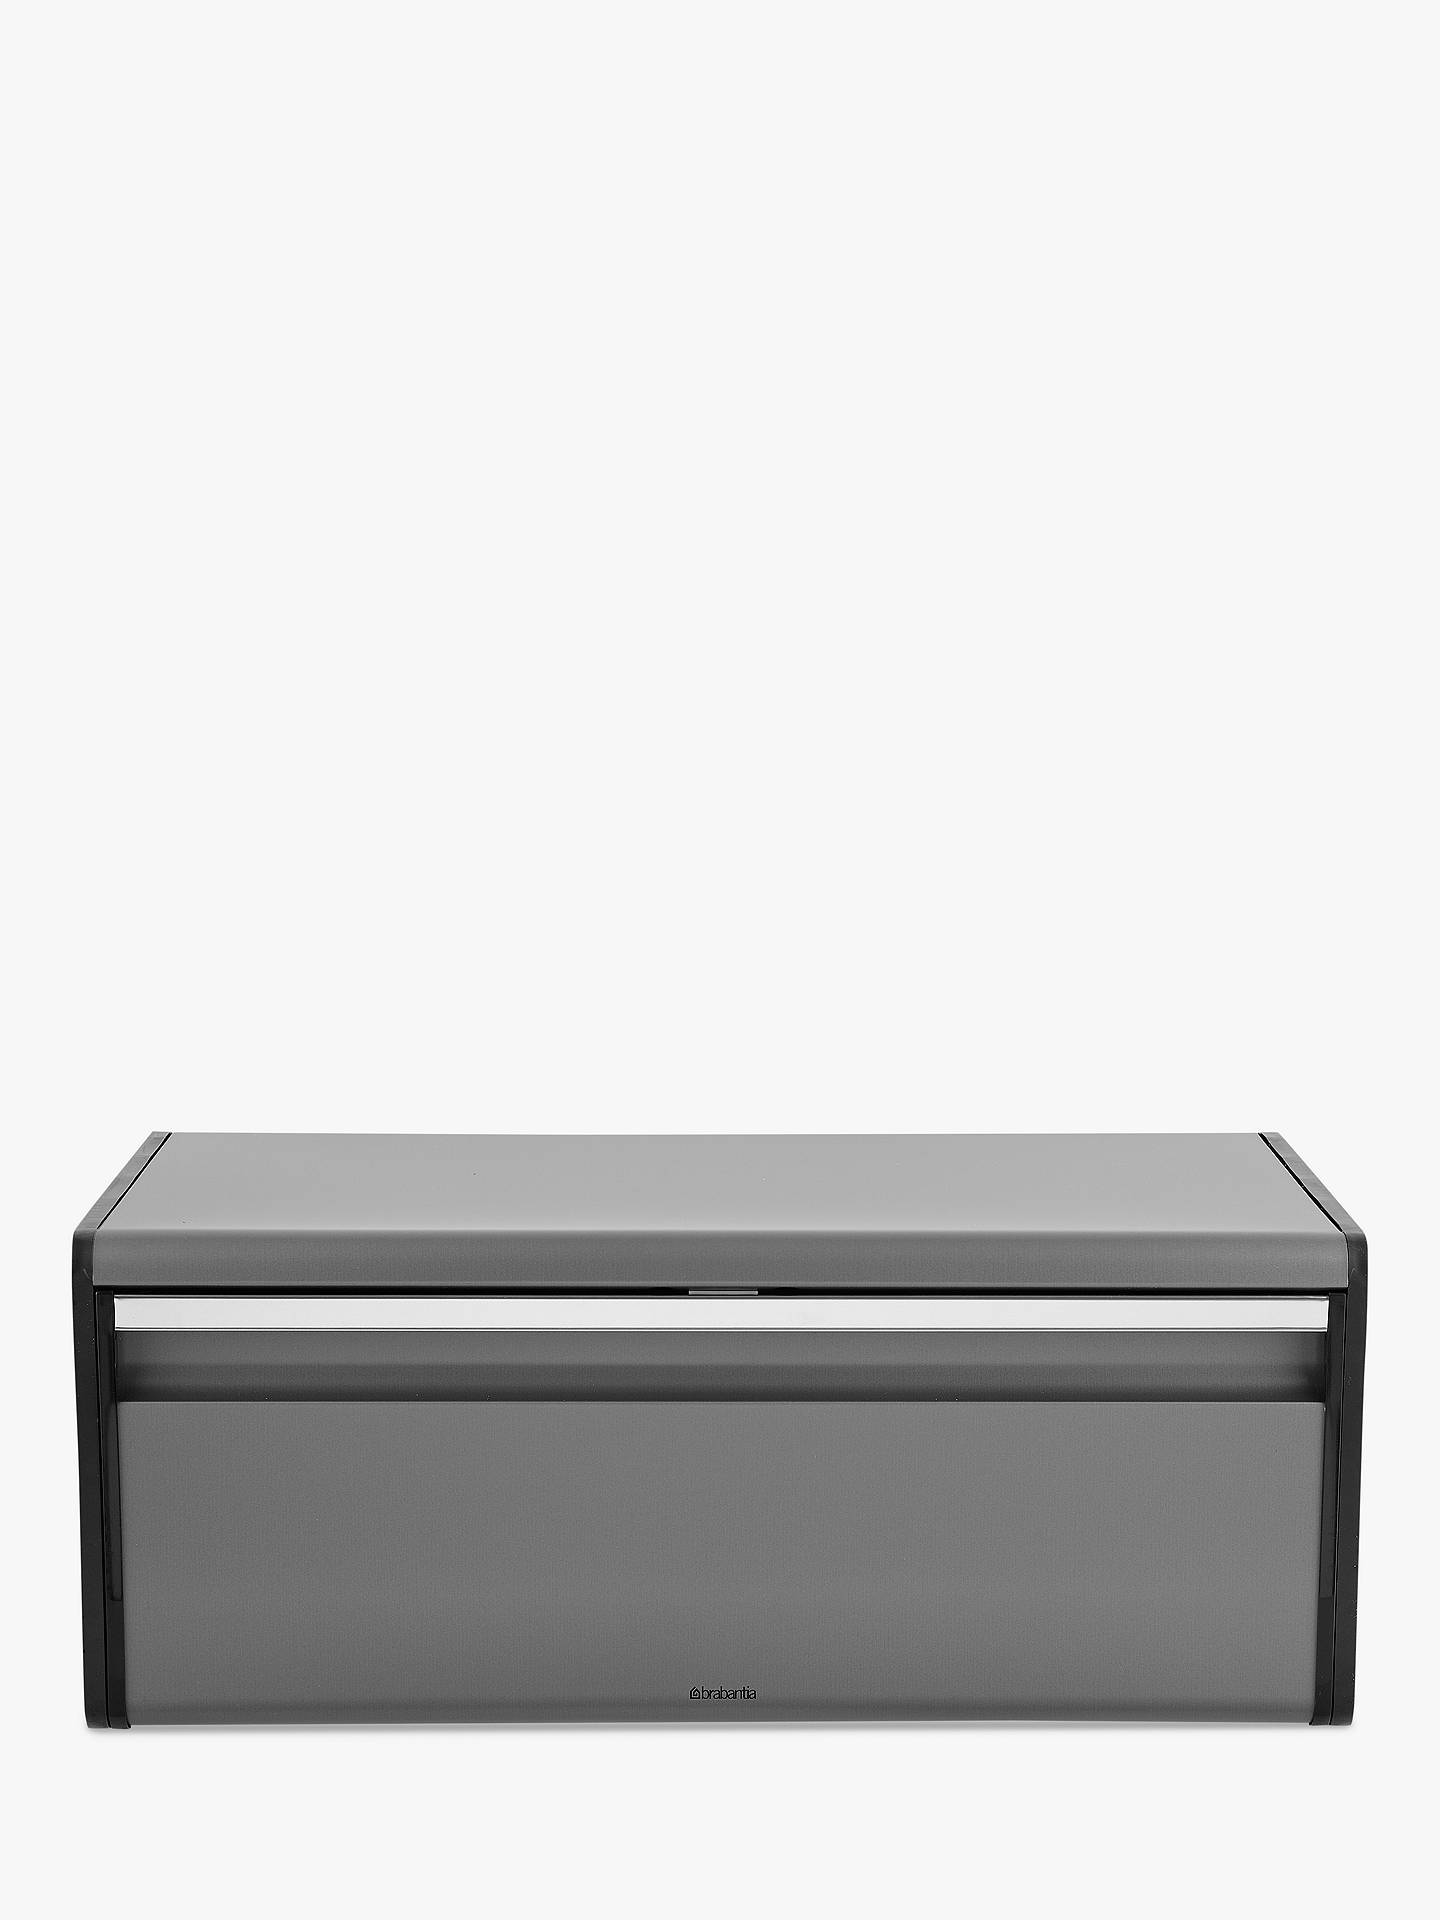 Buy Brabantia Fall Front Bread Bin, Platinum Online at johnlewis.com